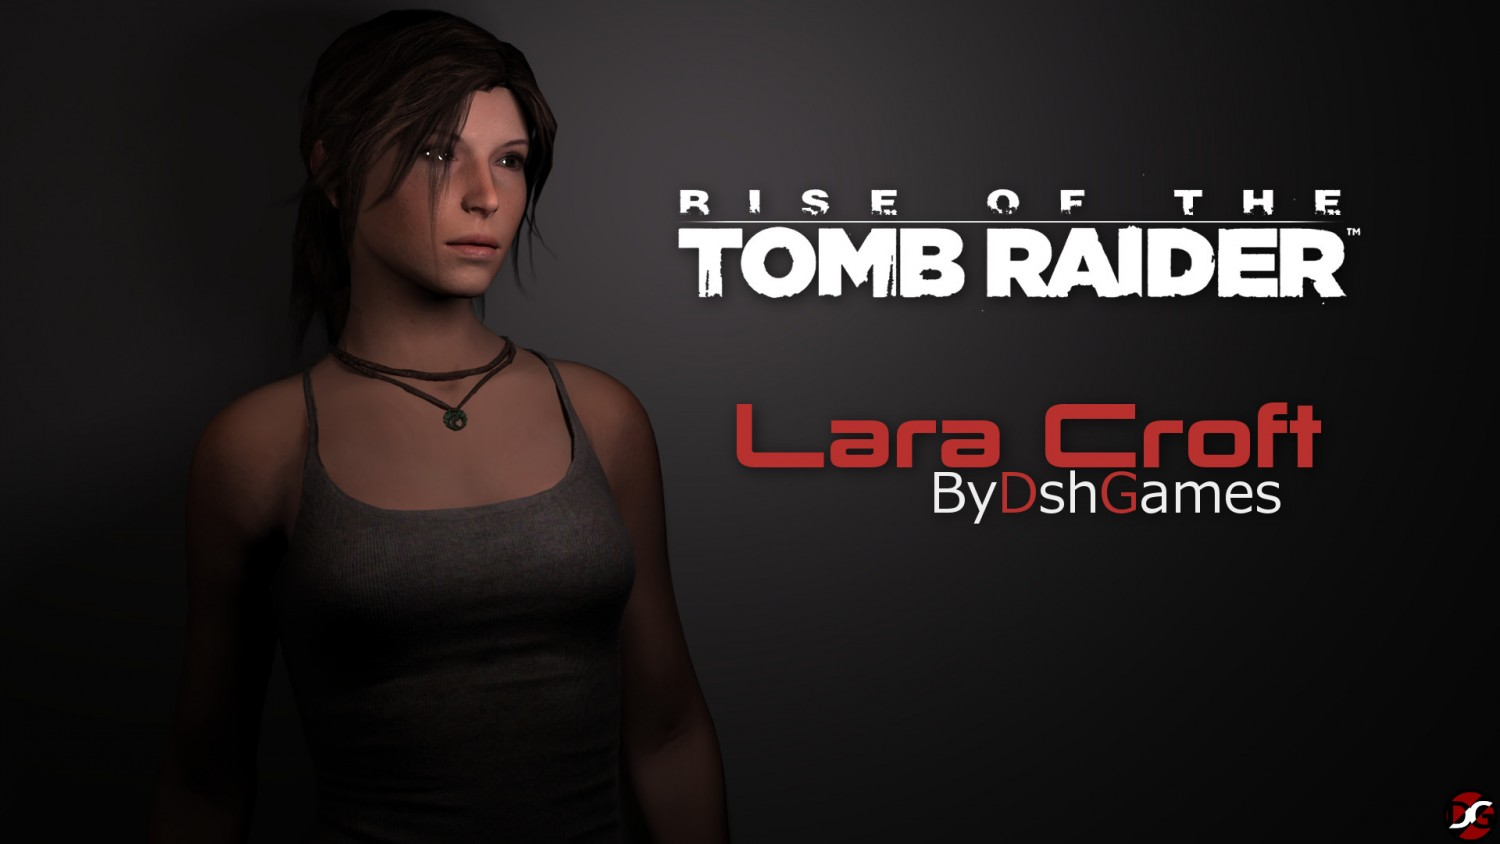 Lara Croft rottr gta